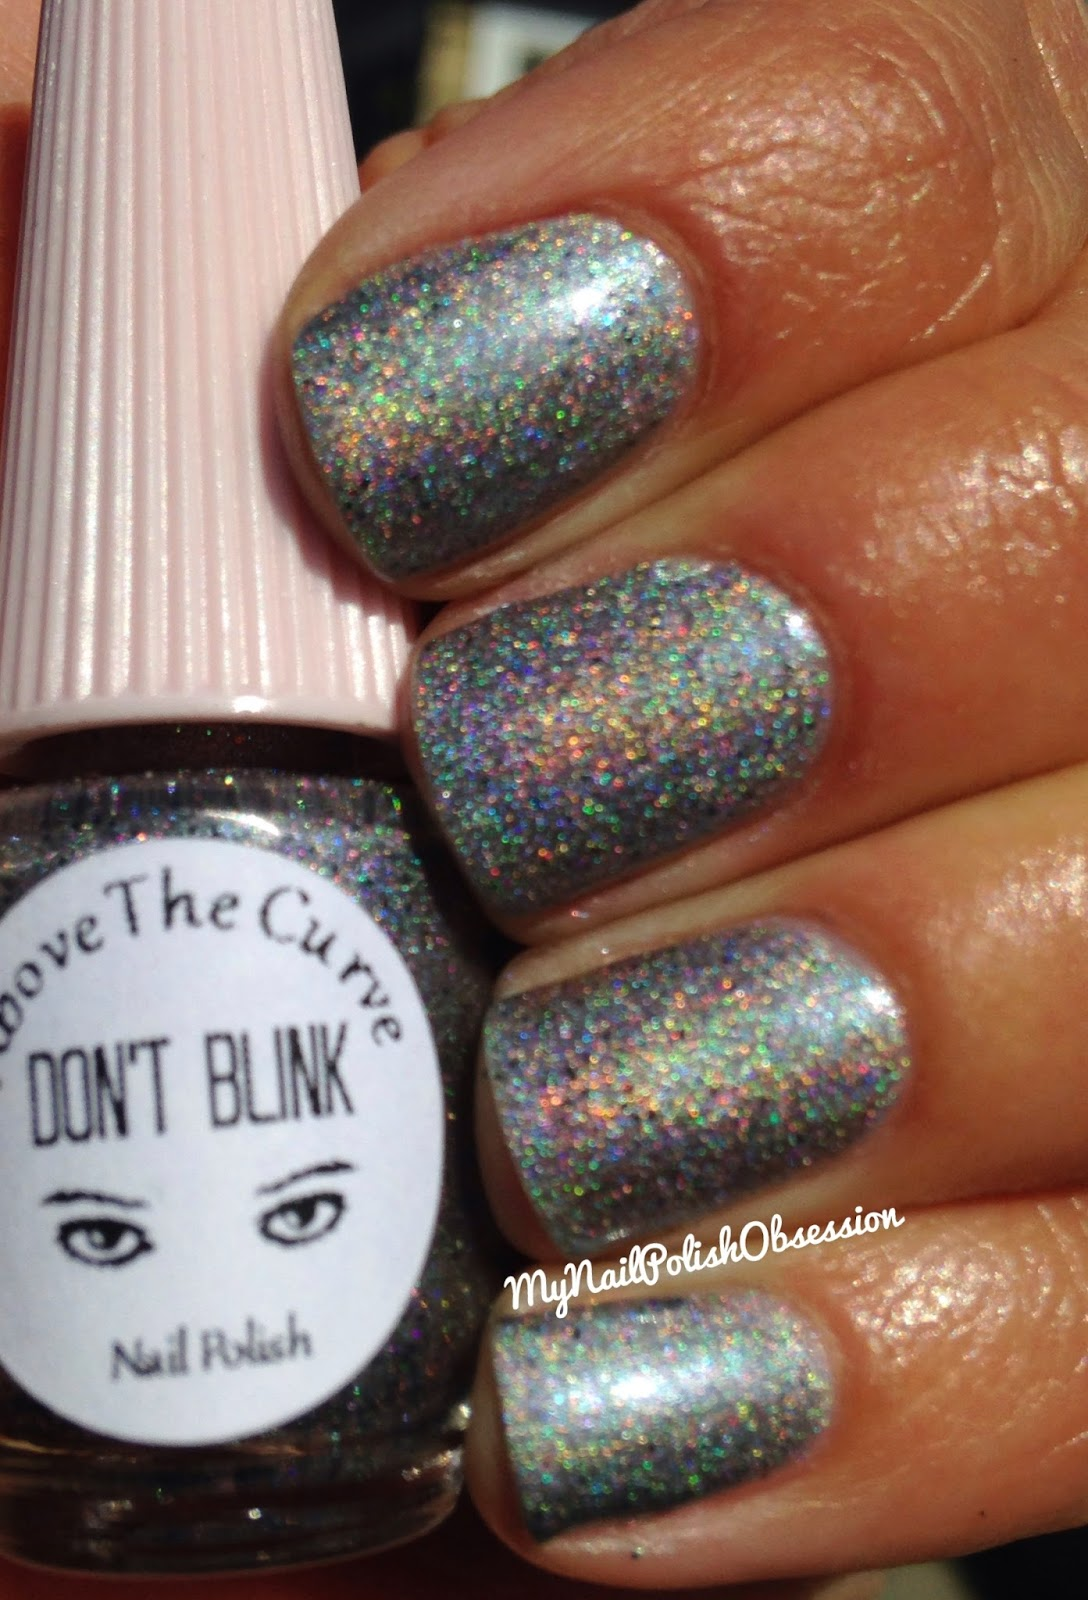 My Nail Polish Obsession: Above The Curve, Miscellaneous Review